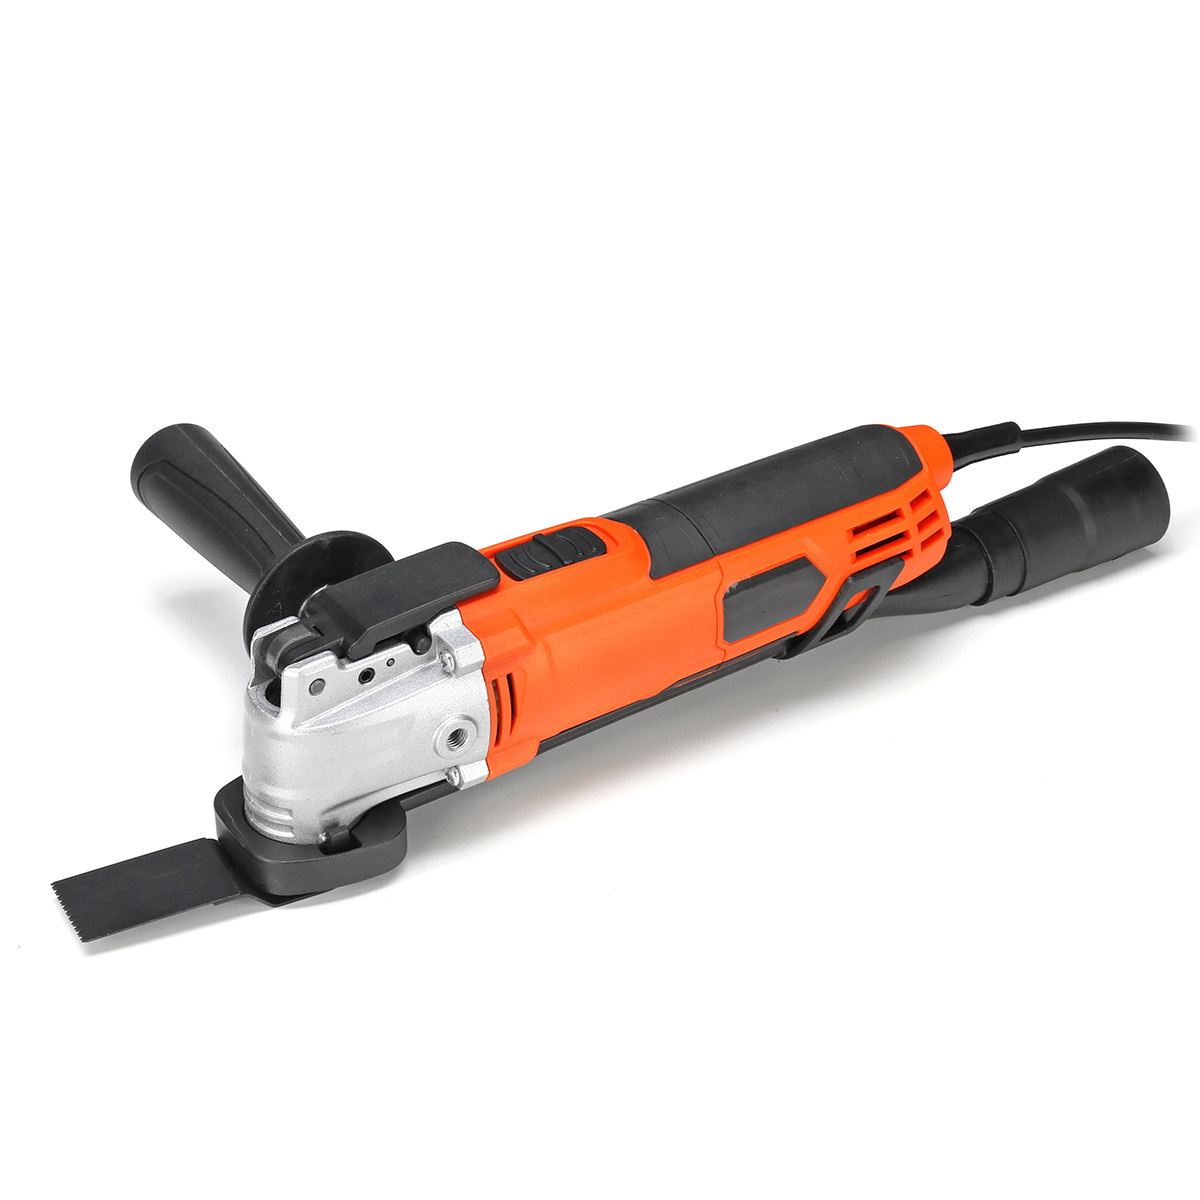 300W 220V Multi-function Trimming Oscillating Tools Electric Sanding Woodworking Cutting Machine